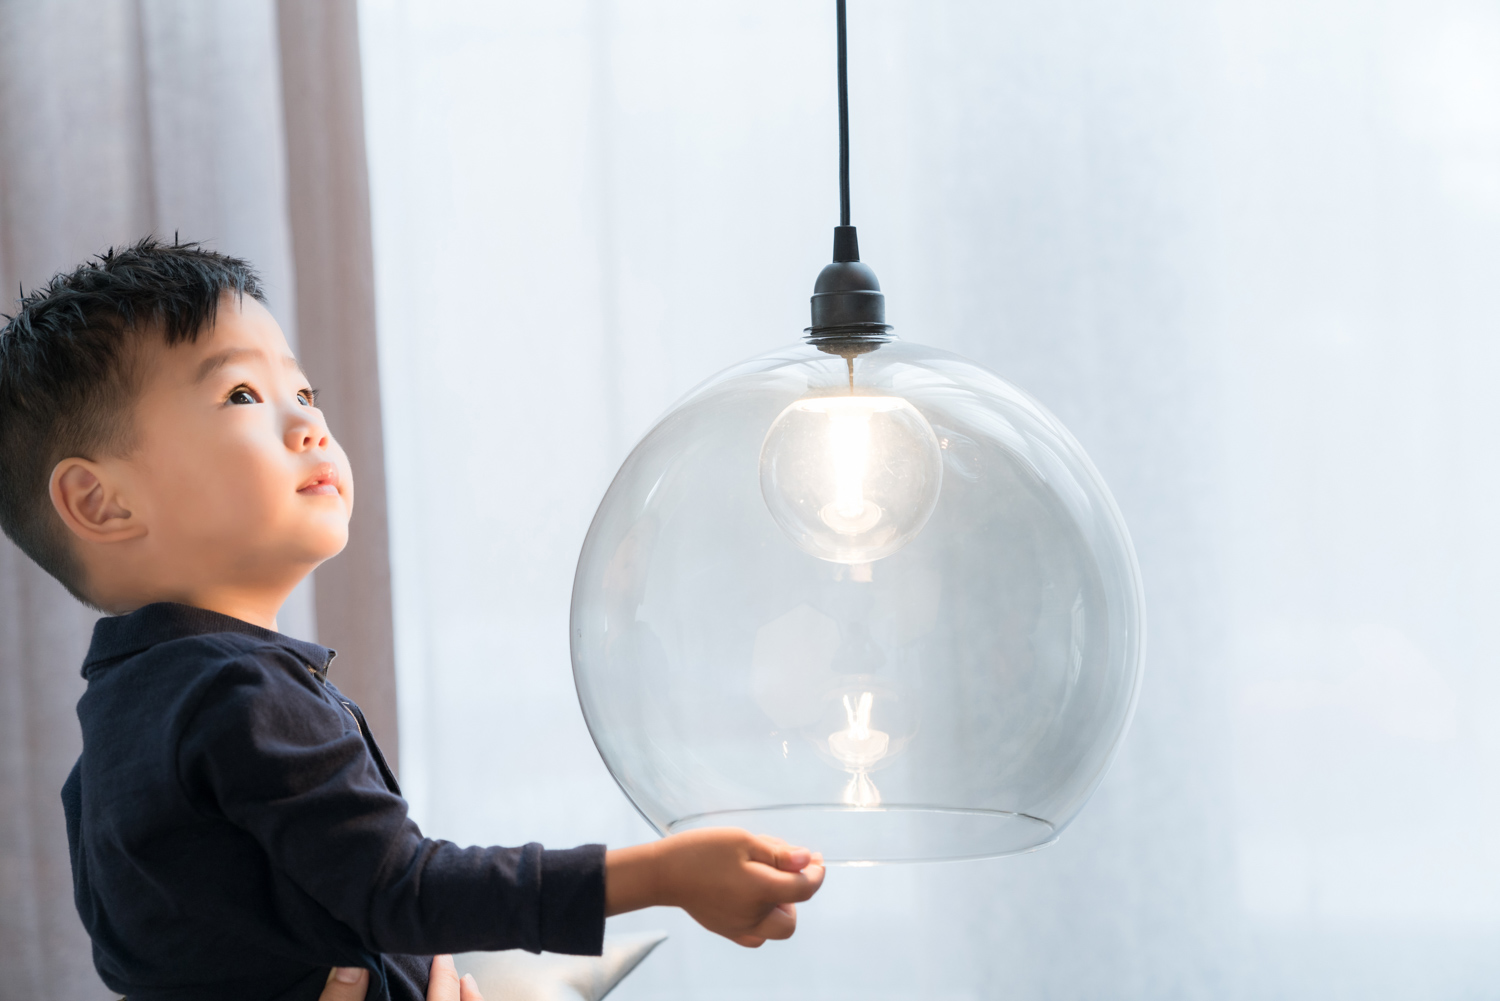 Korean toddler plays with decorative glass light.